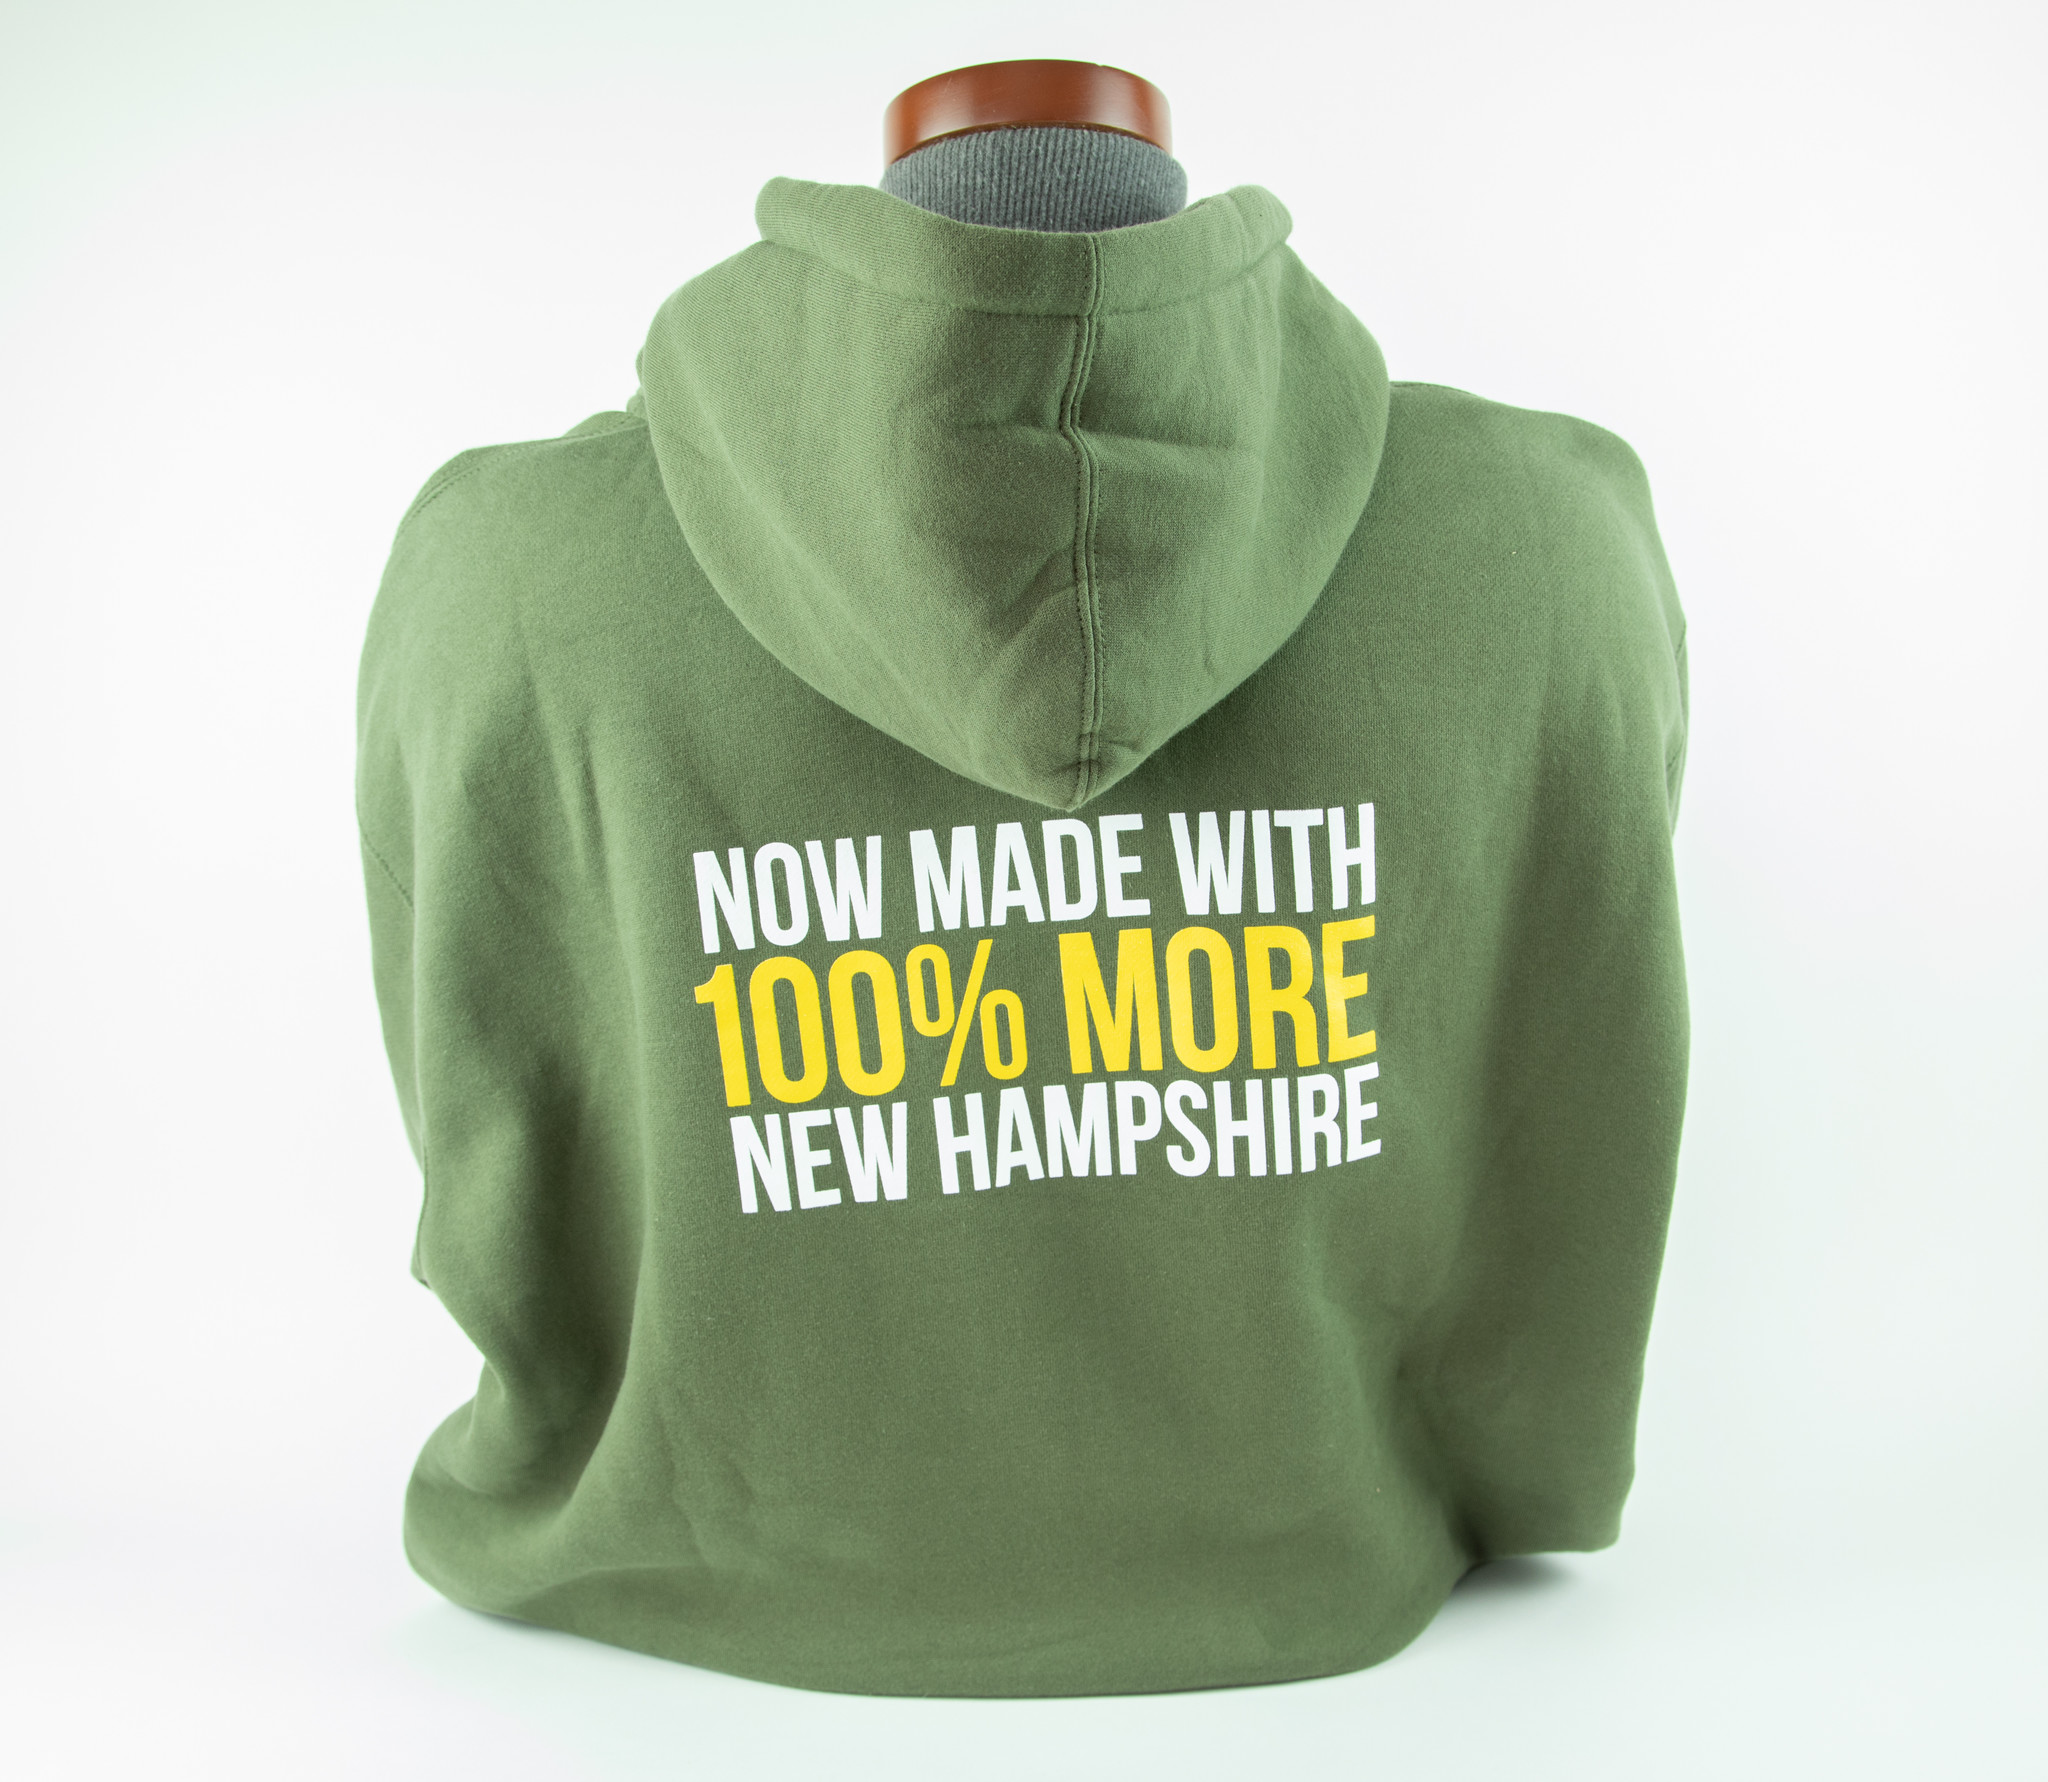 Green Full Zip Sweatshirts